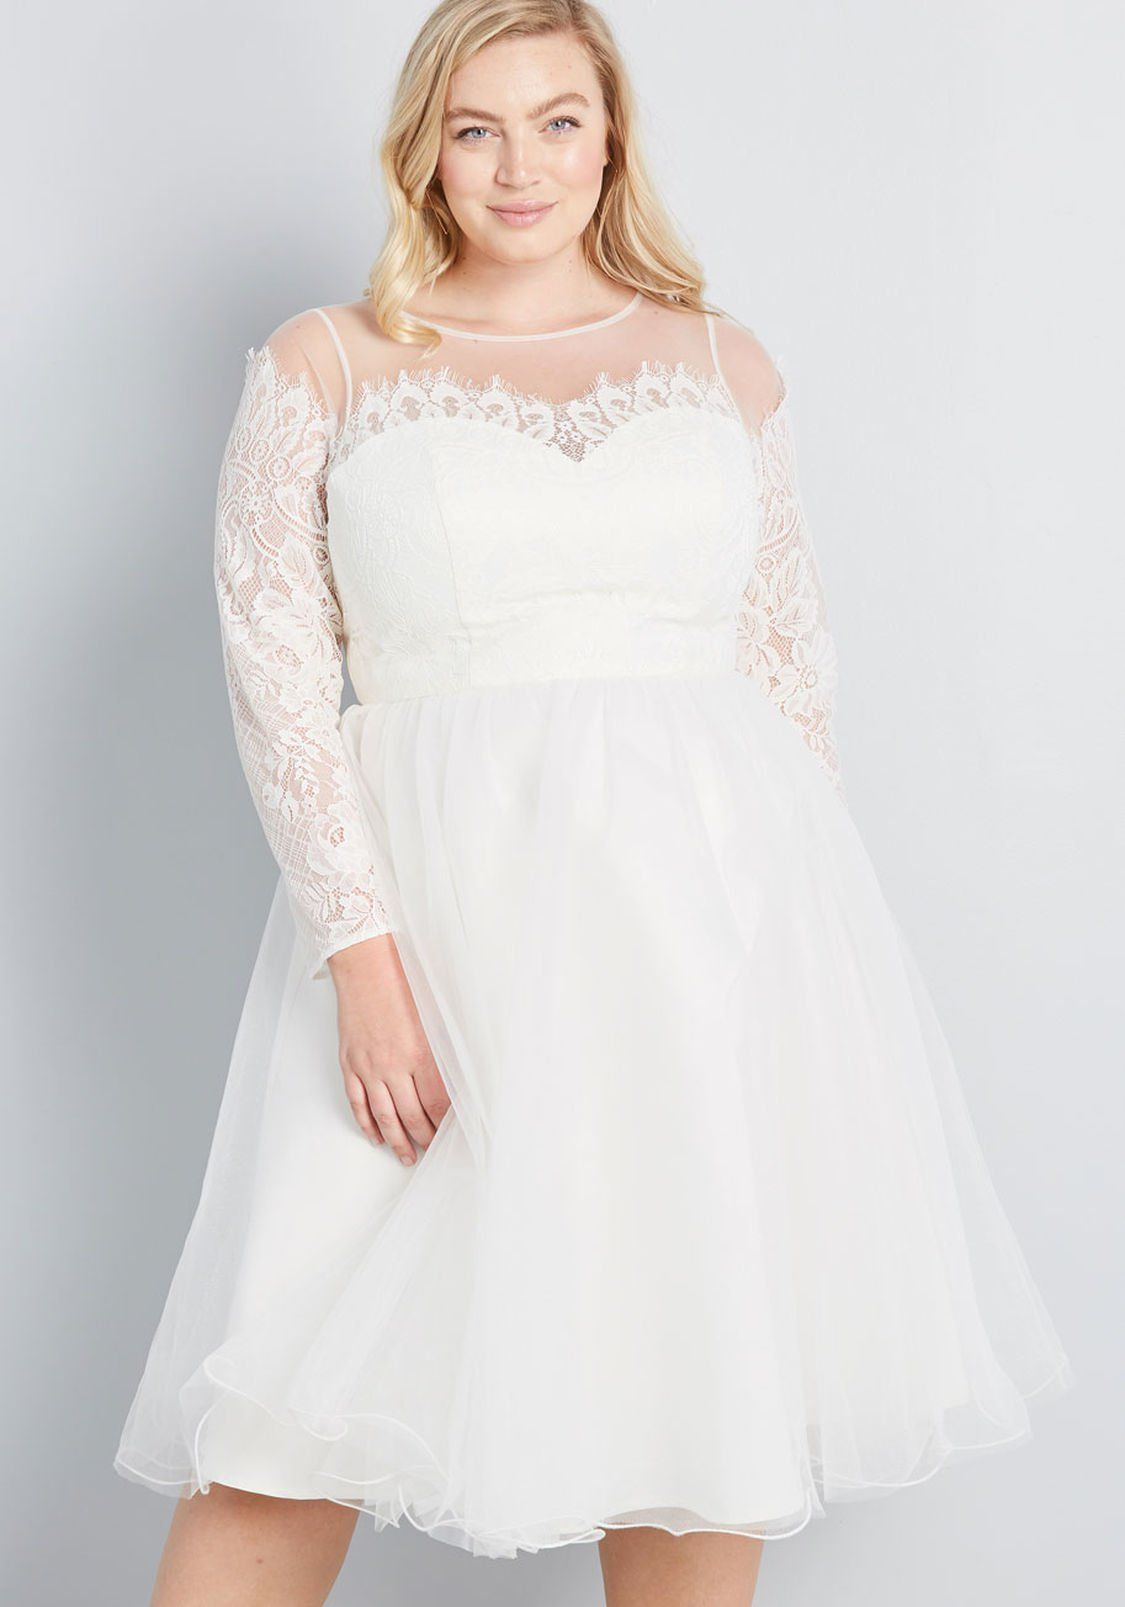 Celebratory Style Fit And Flare Dress By Chi Chi London From Modcloth Size 2 24 Plus Size Retro V Lace Dress Vintage Fit And Flare Dress Little White Dresses [ 1607 x 1125 Pixel ]